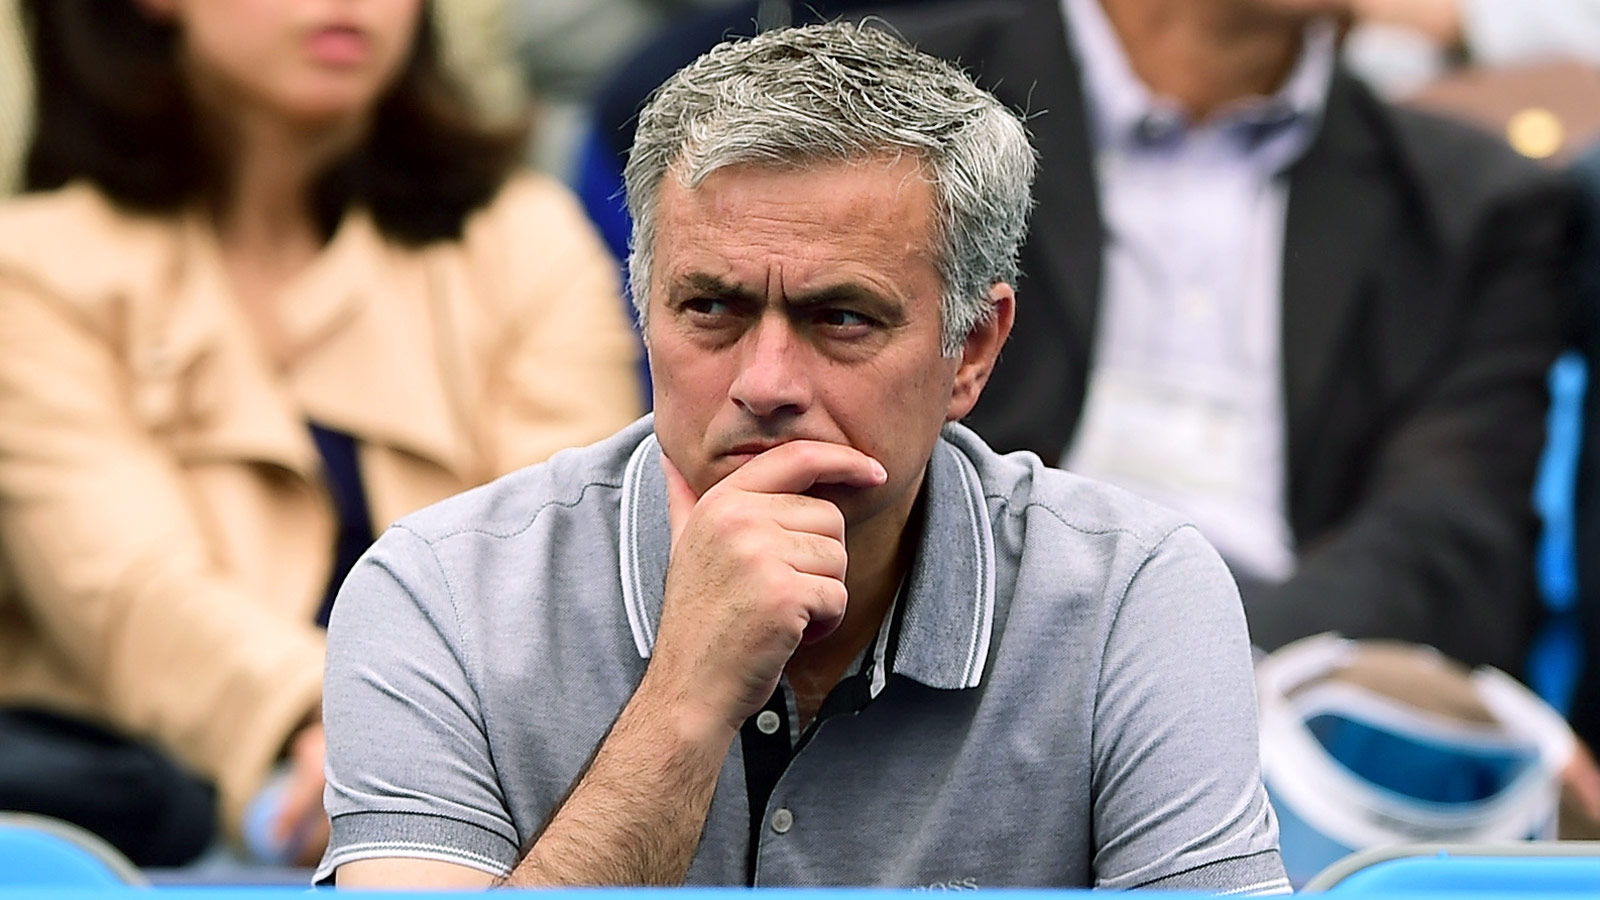 Chelsea boss Mourinho says English Premier League clubs are trying to buy title